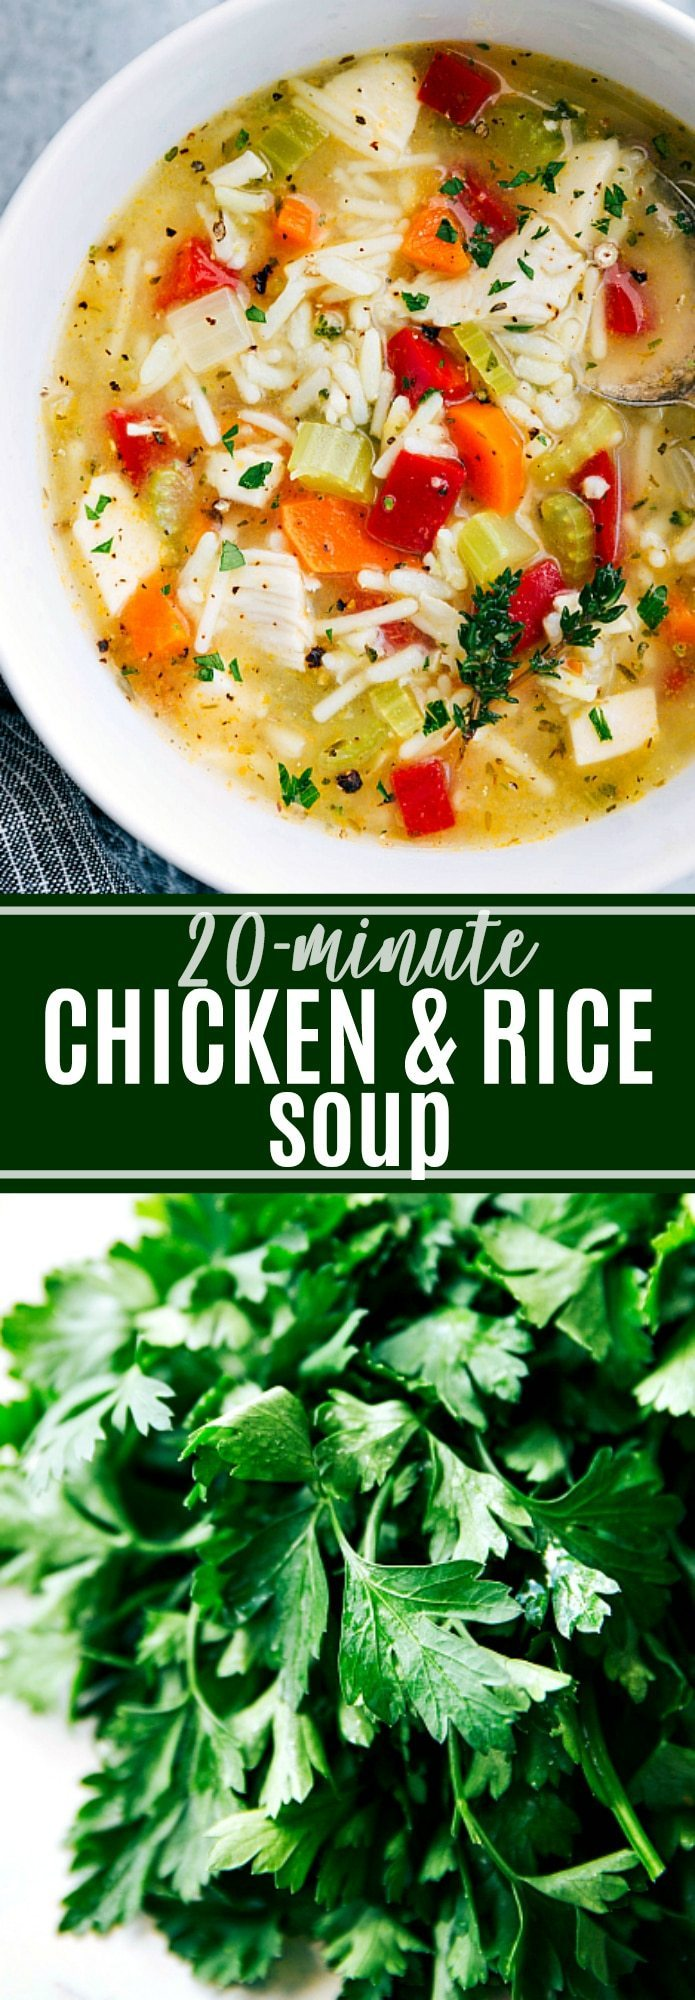 A chicken broth based soup chock-full with good for you vegetables, shredded chicken, rice, and seasonings. A hearty, healthy, and delicious soup. via chelseasmessyapron.com